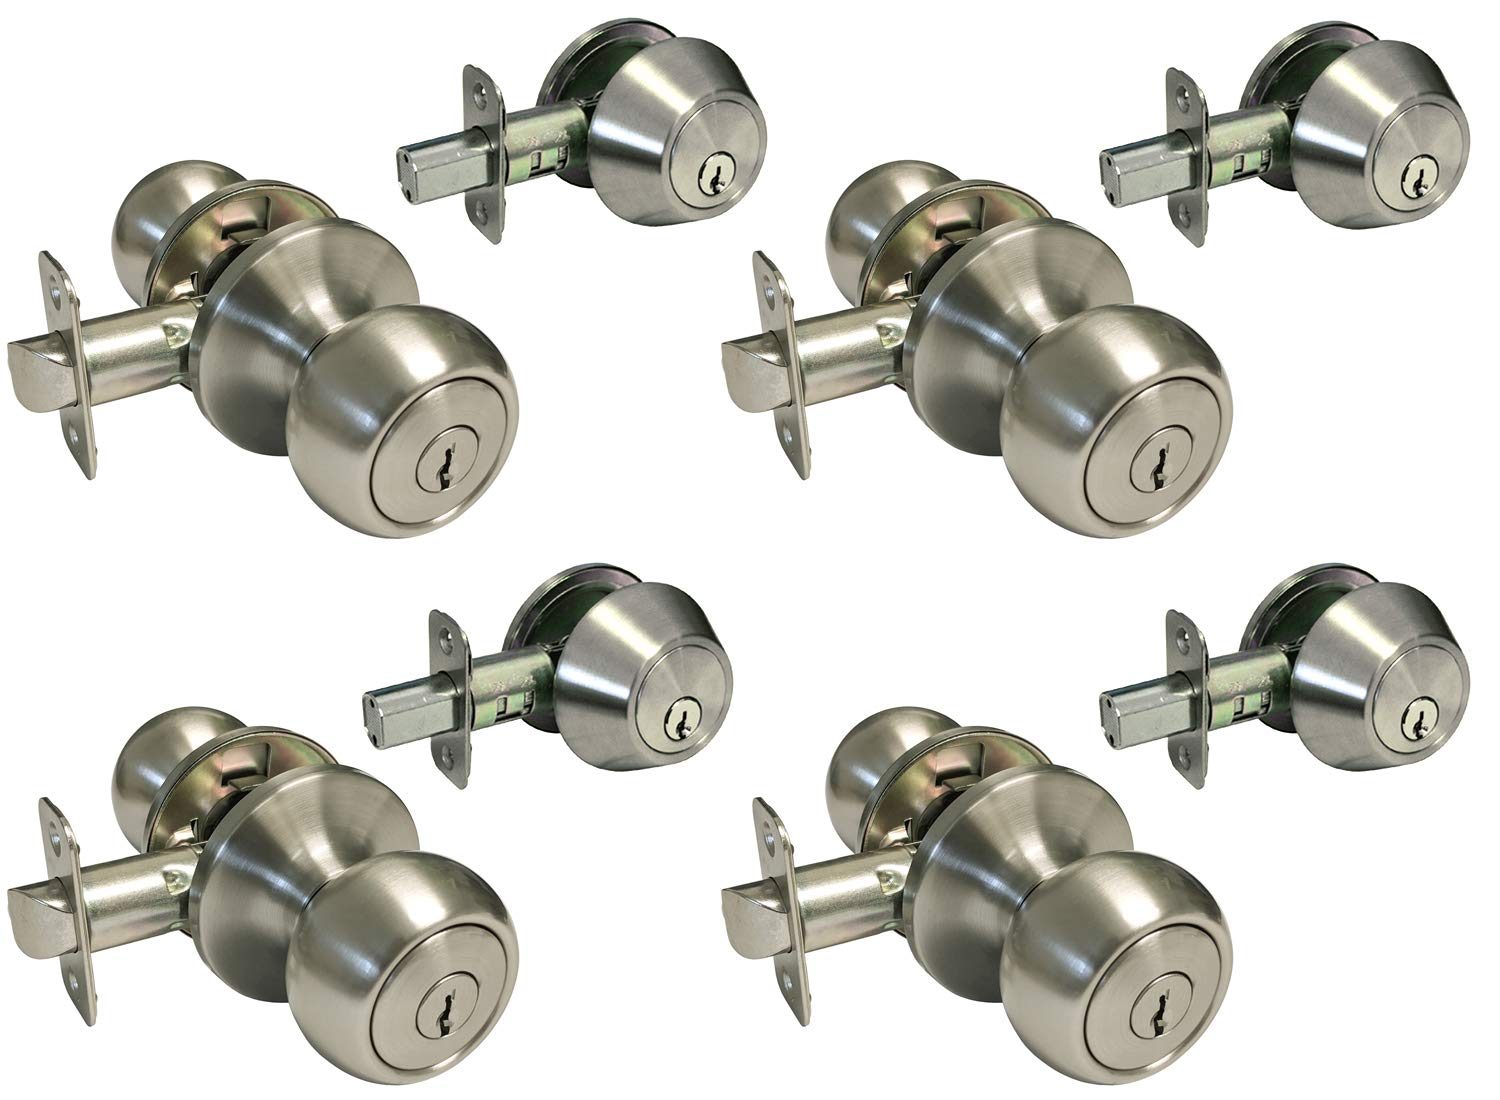 4 Sets Satin Nickel Entry Entrance Keyed Round Knob with Matching Single Cylinder Deadbolt (Keyed on The Outside and a Thumb Turn on The Inside) Combo Pack Keyed Alike